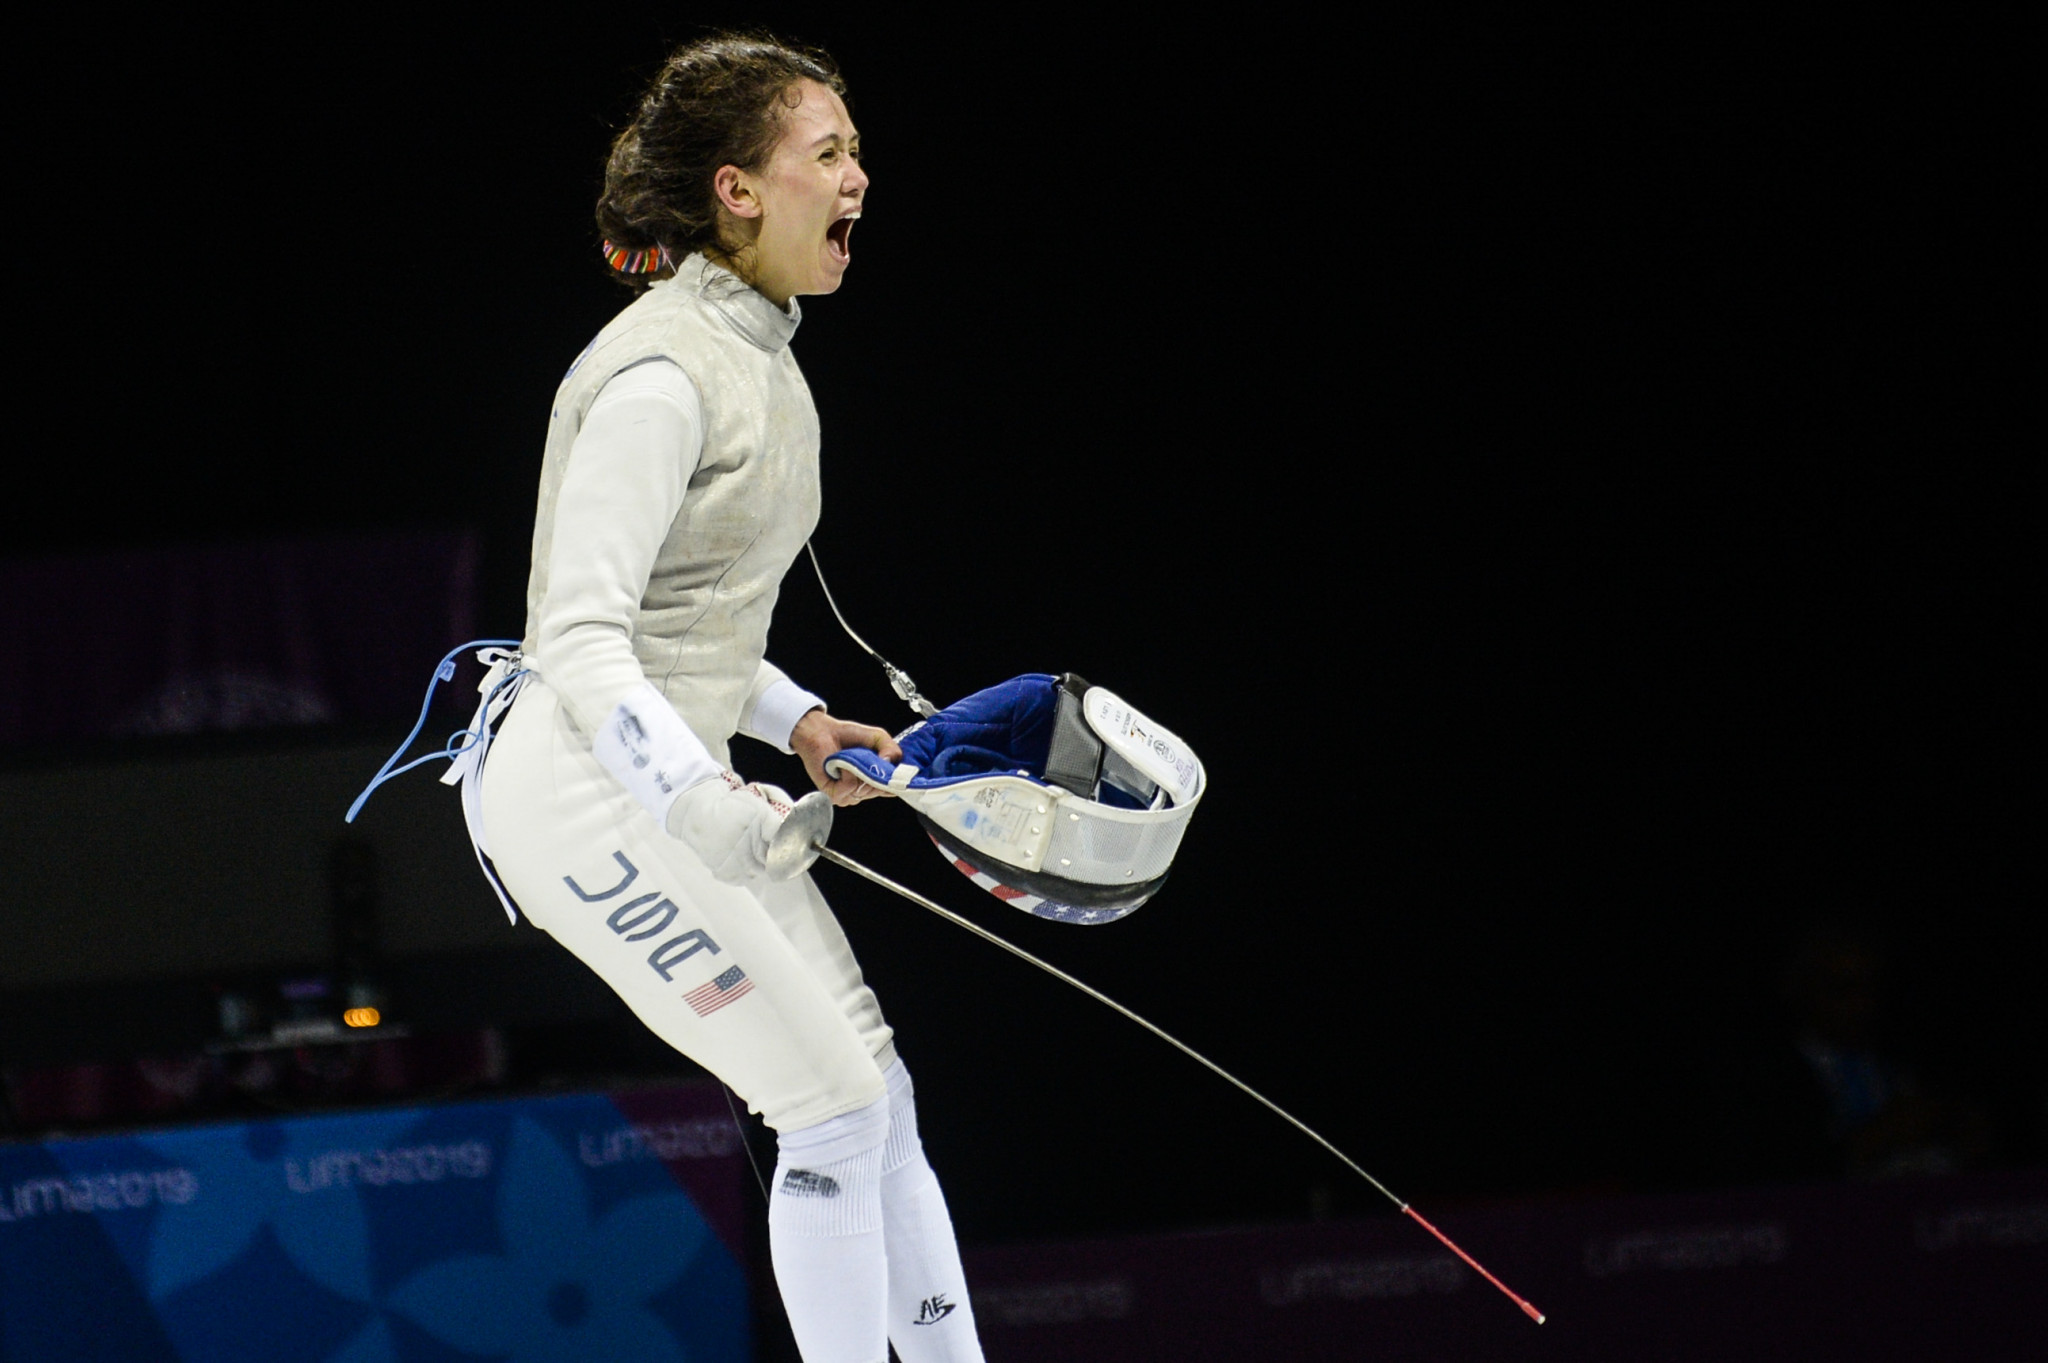 Lee Kiefer won her third consecutive Pan American Games women's foil title ©Getty Images